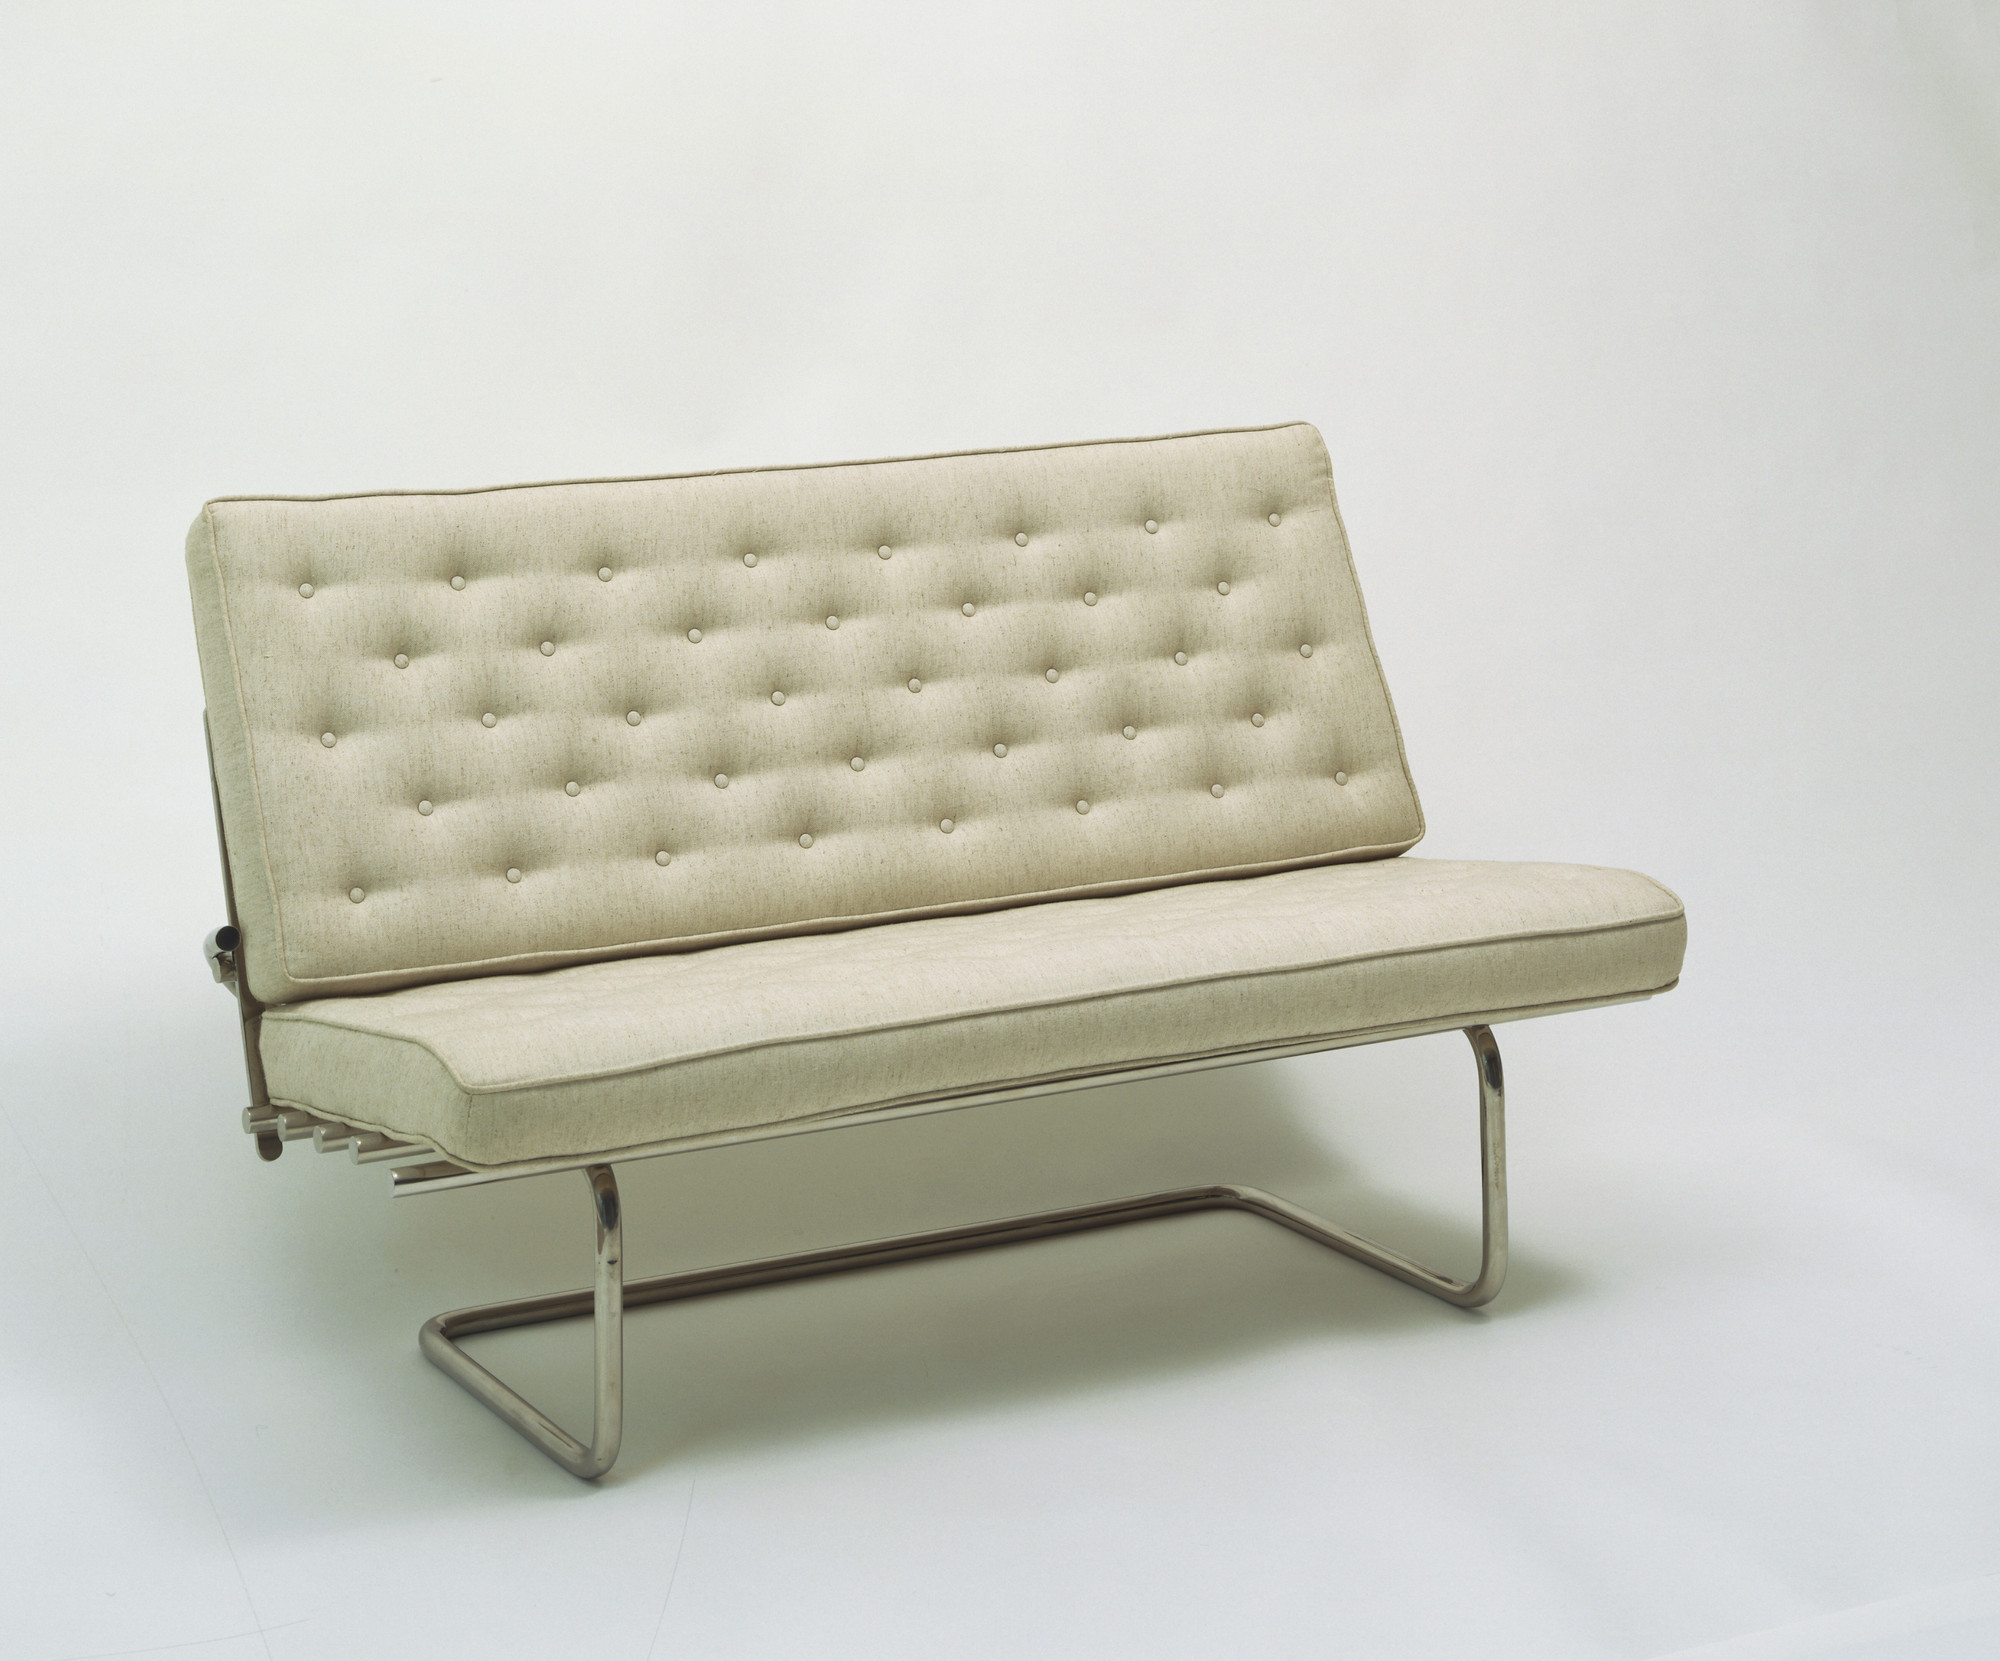 Marcel Breuer. Couch. Designed 1930–1931 (this example 1981)